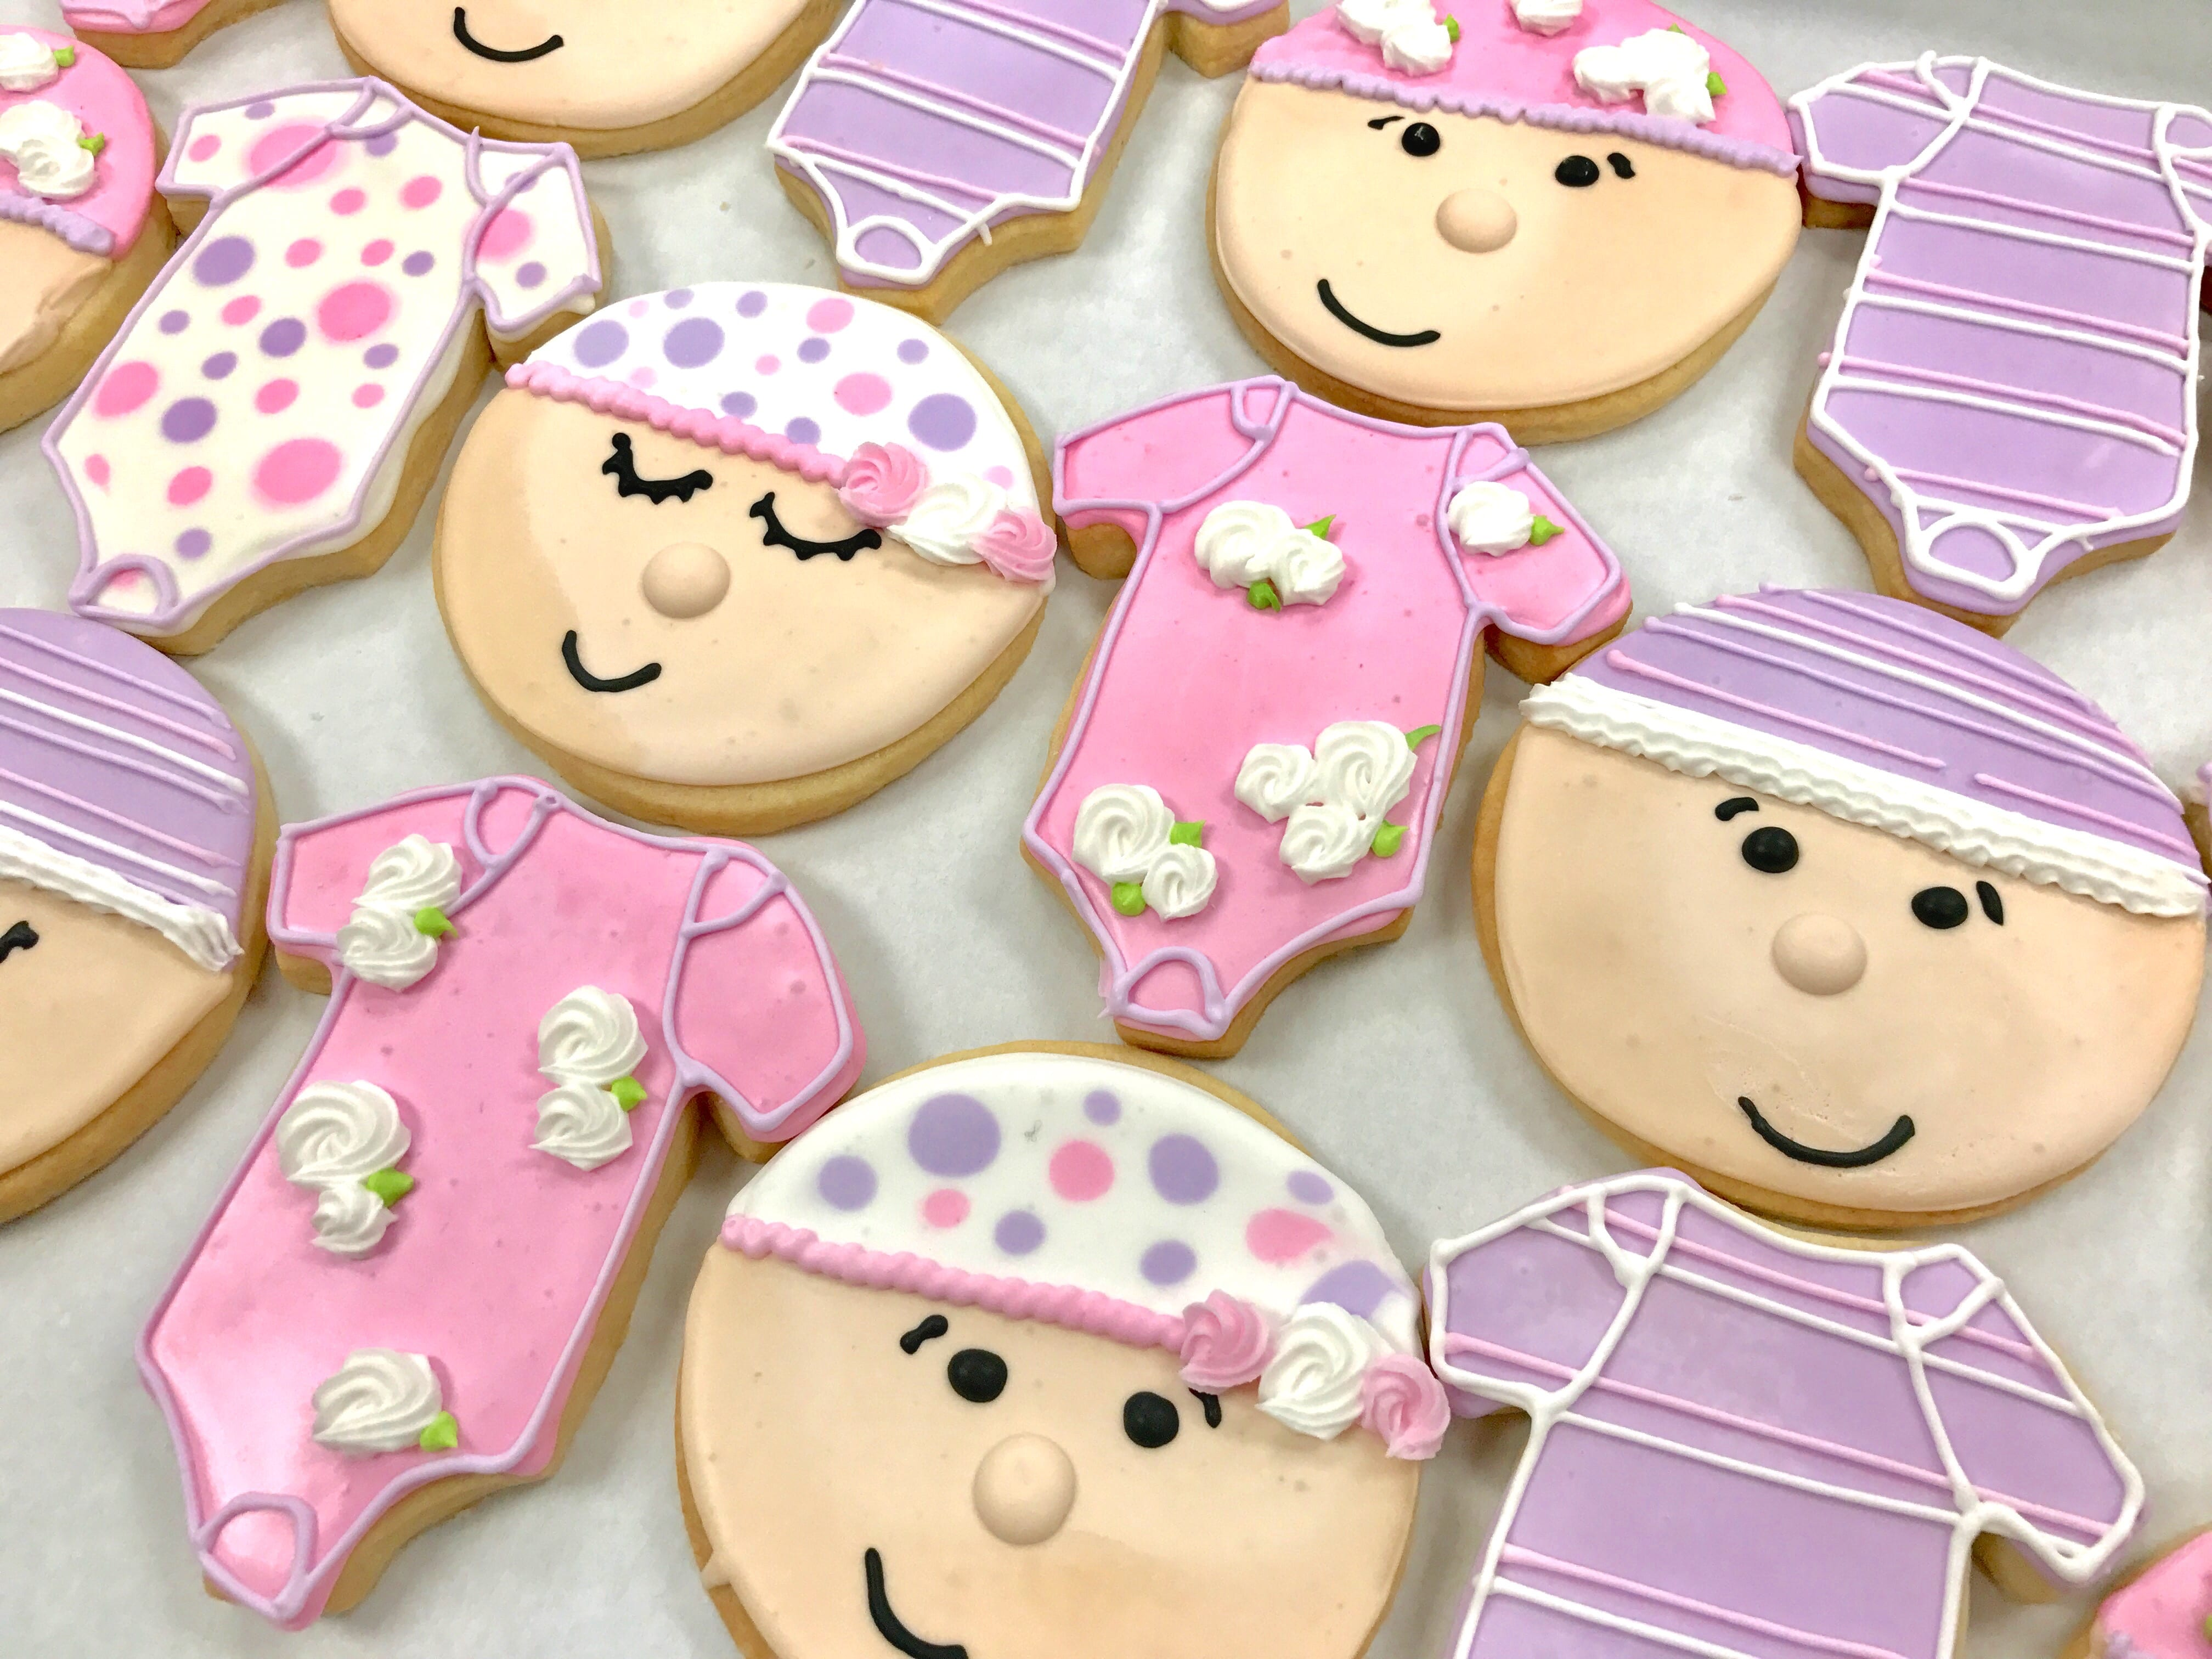 Lavender and Pink Baby Onesie and Baby Face Cookies | 3 Sweet Girls Cakery